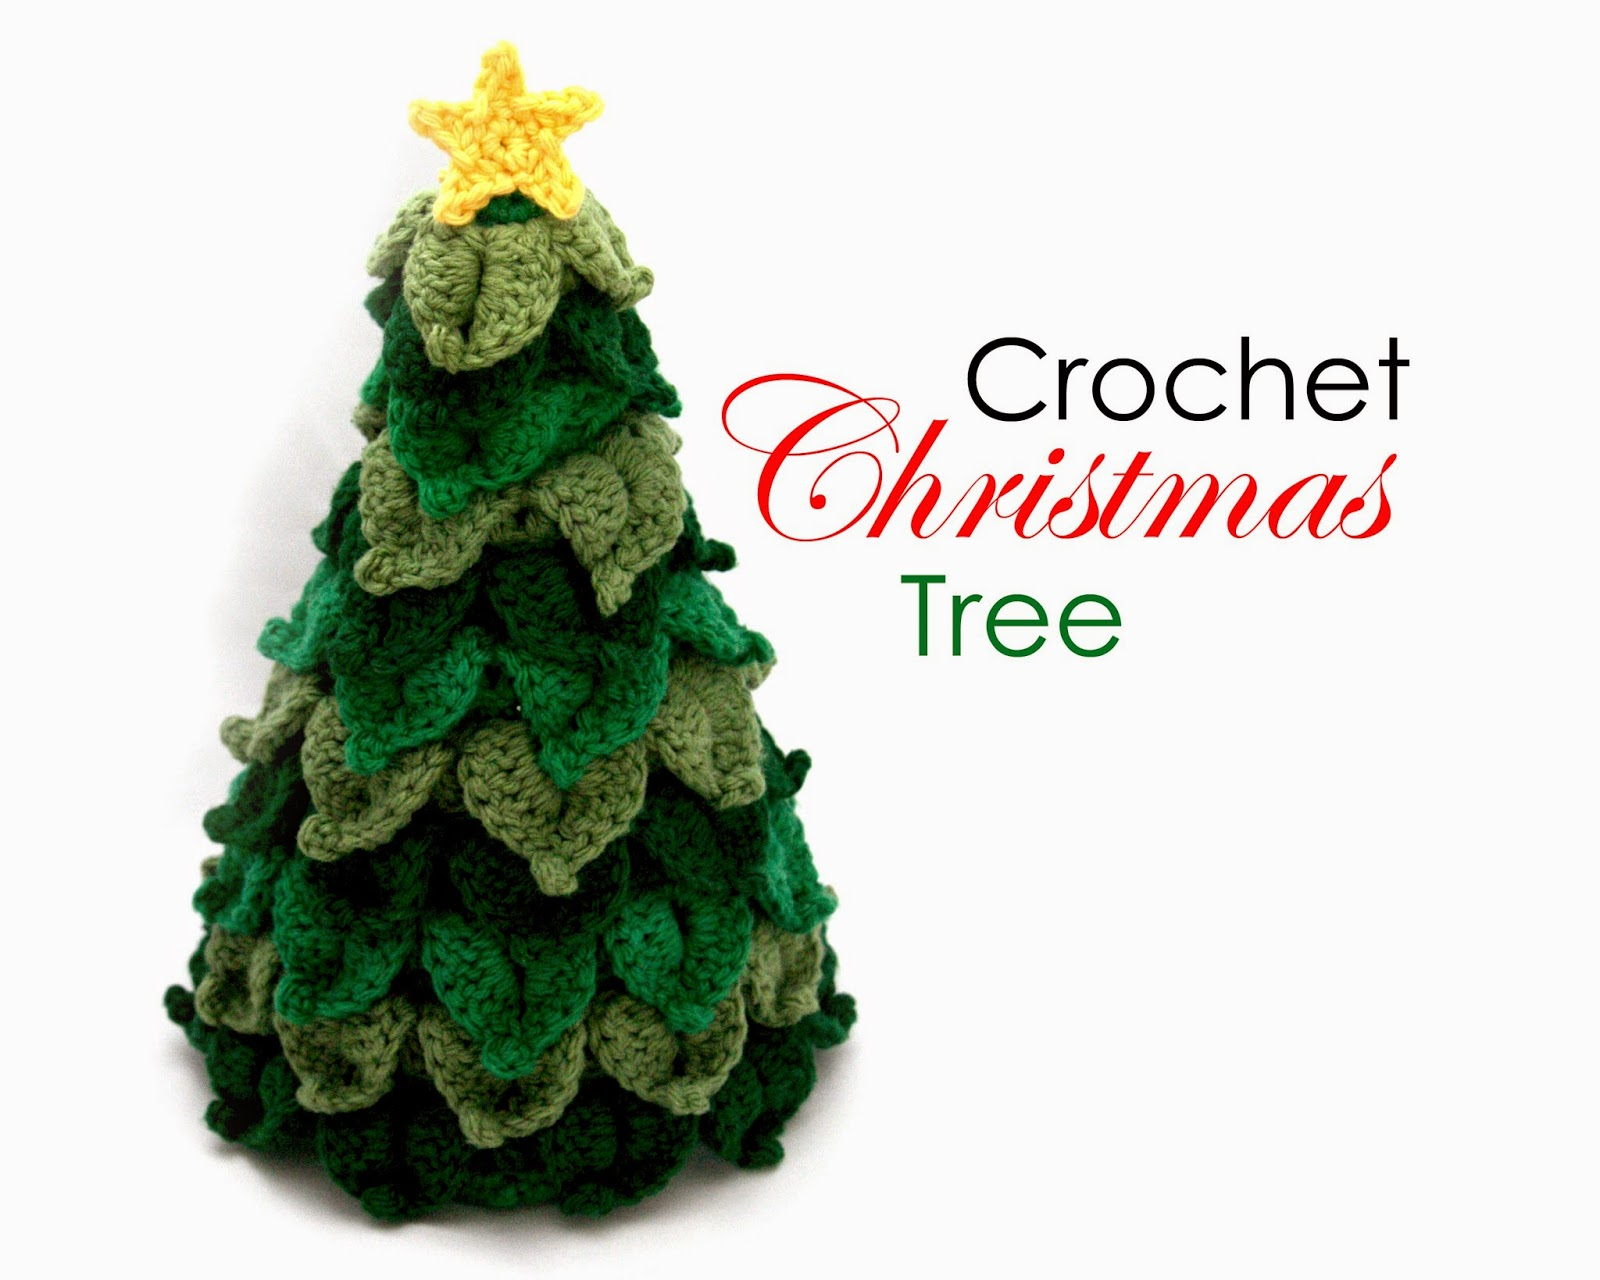 Crochet Pattern For Xmas Tree : Little Abbee: O Crochet Christmas Tree! Crochet TUTORIAL